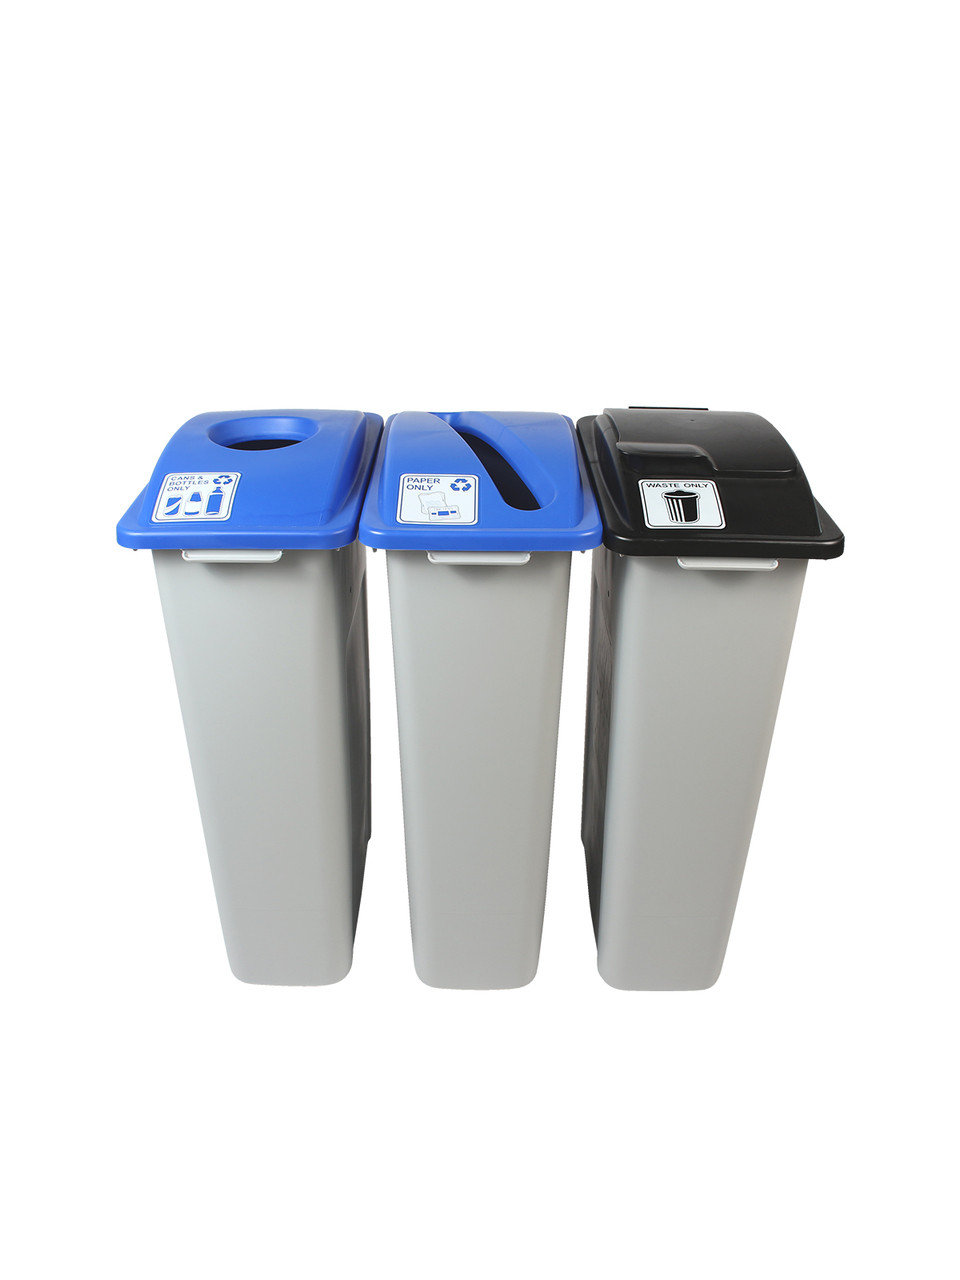 69 Gallon Simple Sort Skinny Recycle Bin Center 8105054-135 (Cans, Paper, Waste Lift Lid)